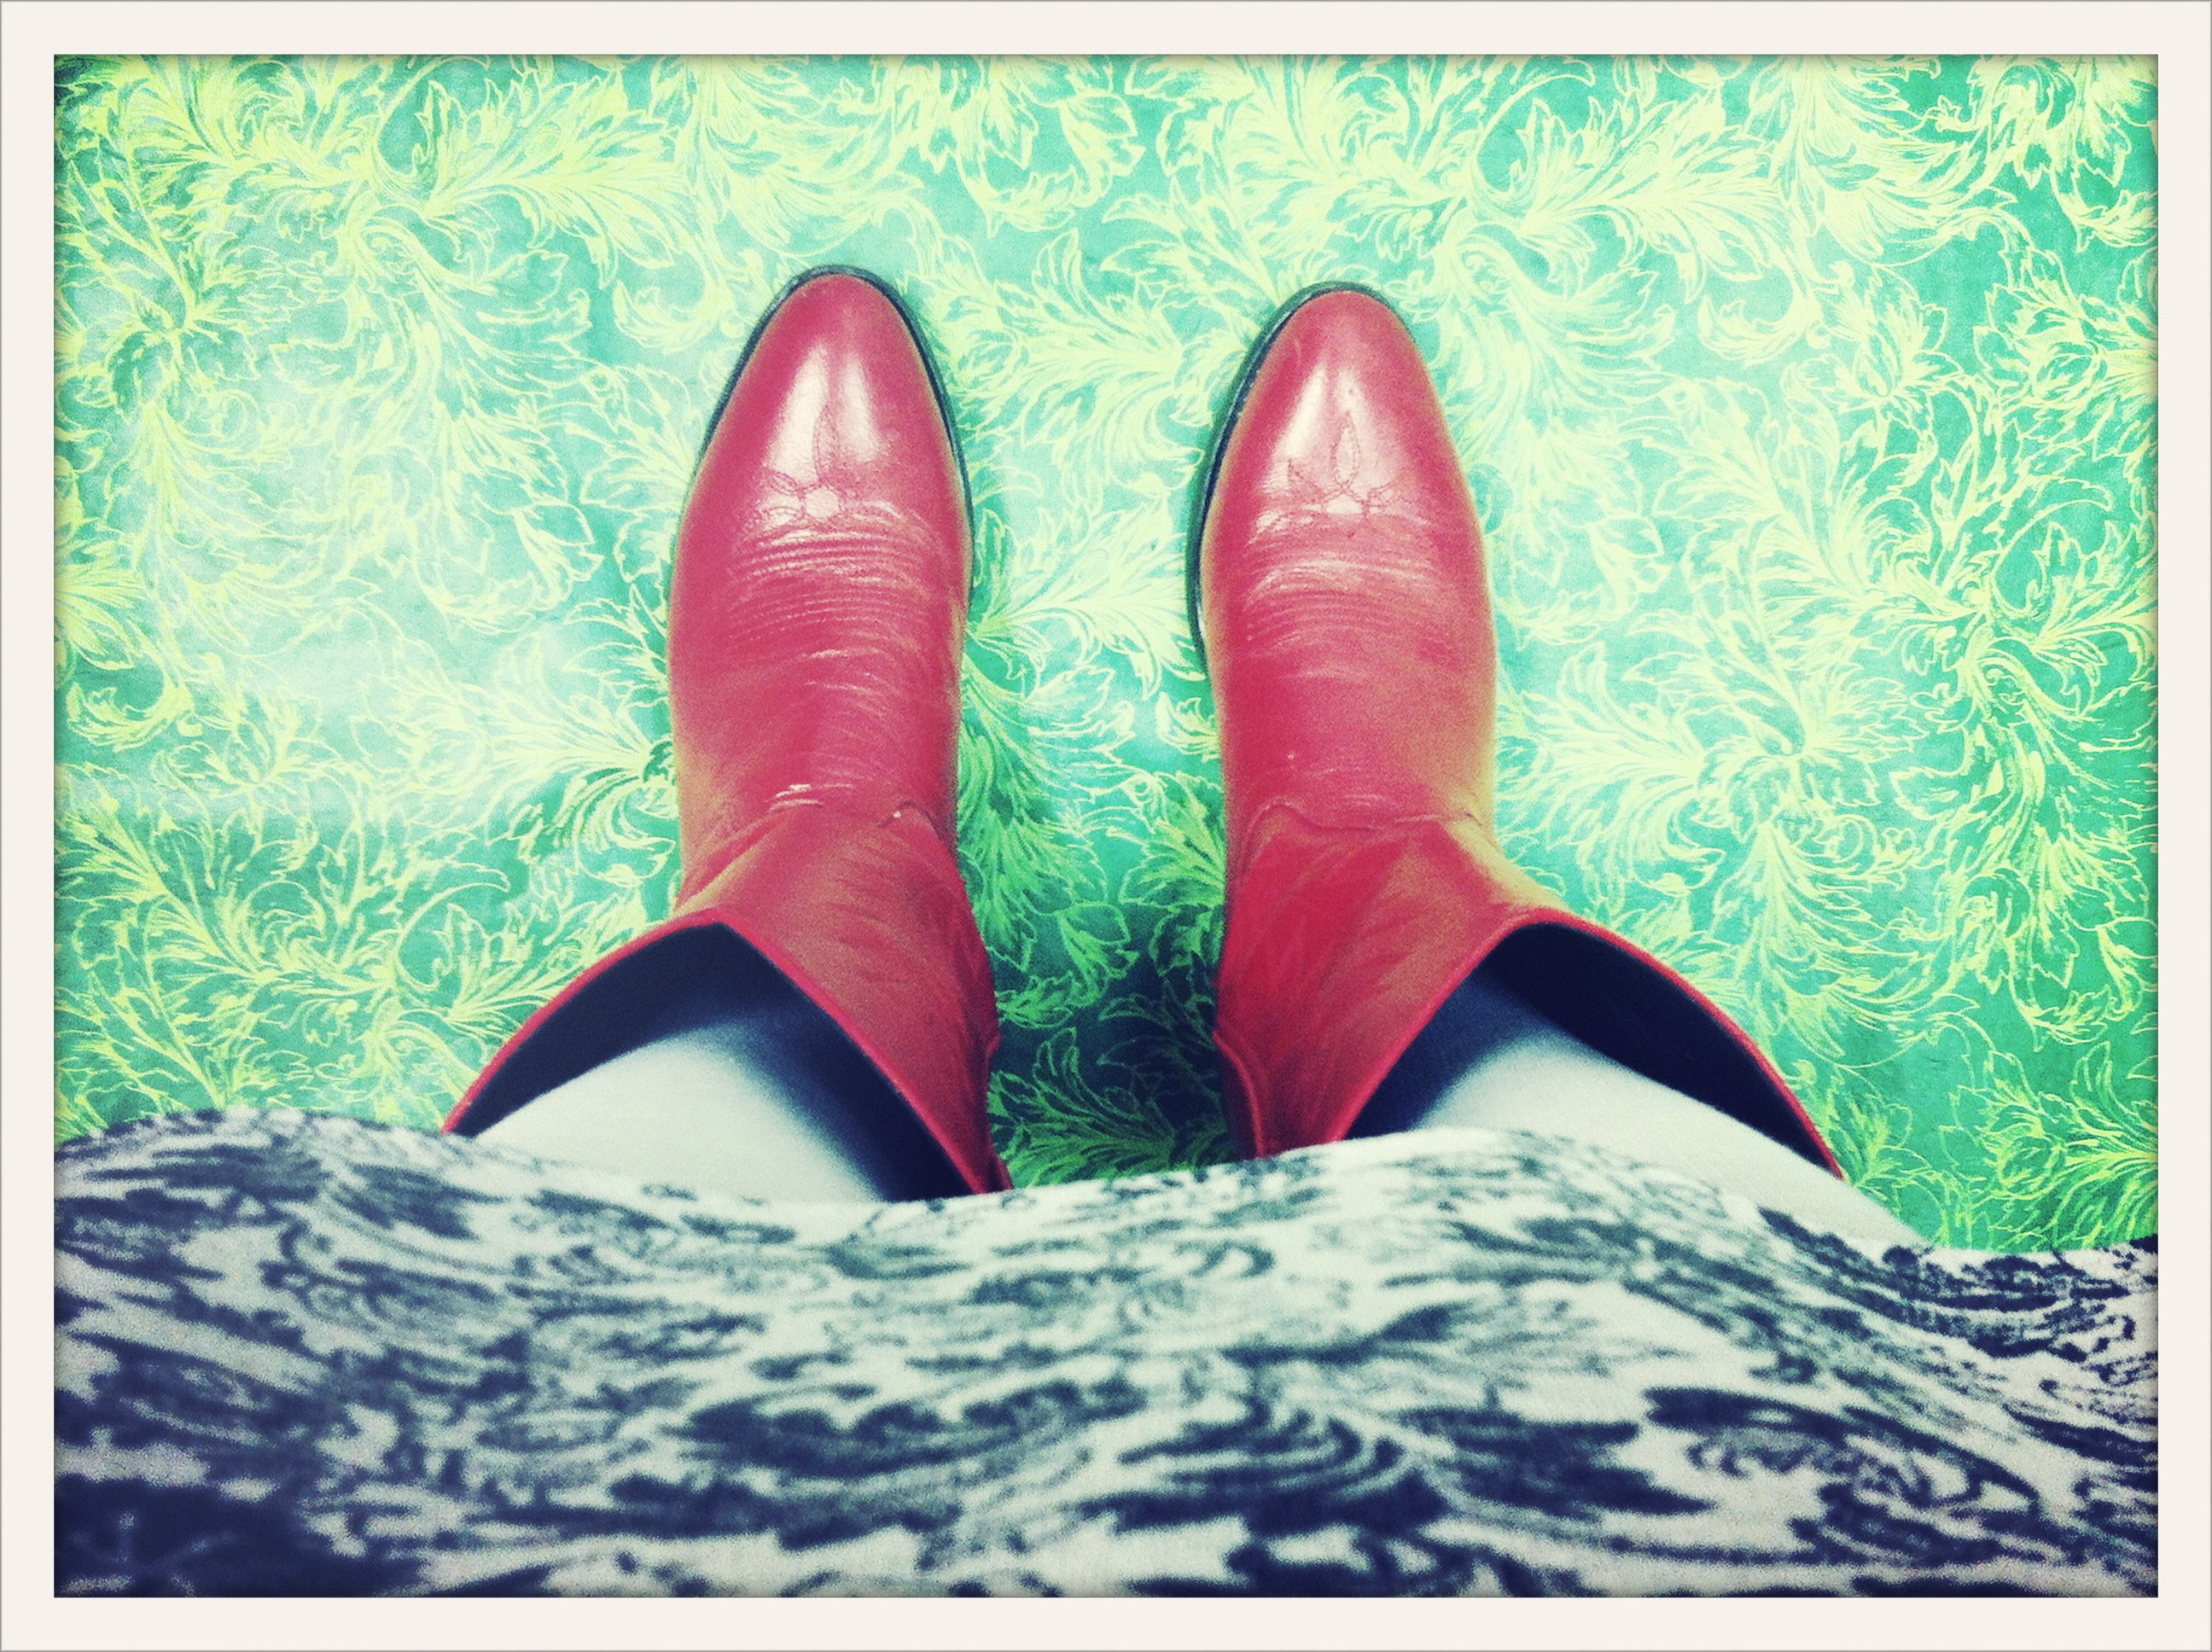 Tennessee red boots on green holly